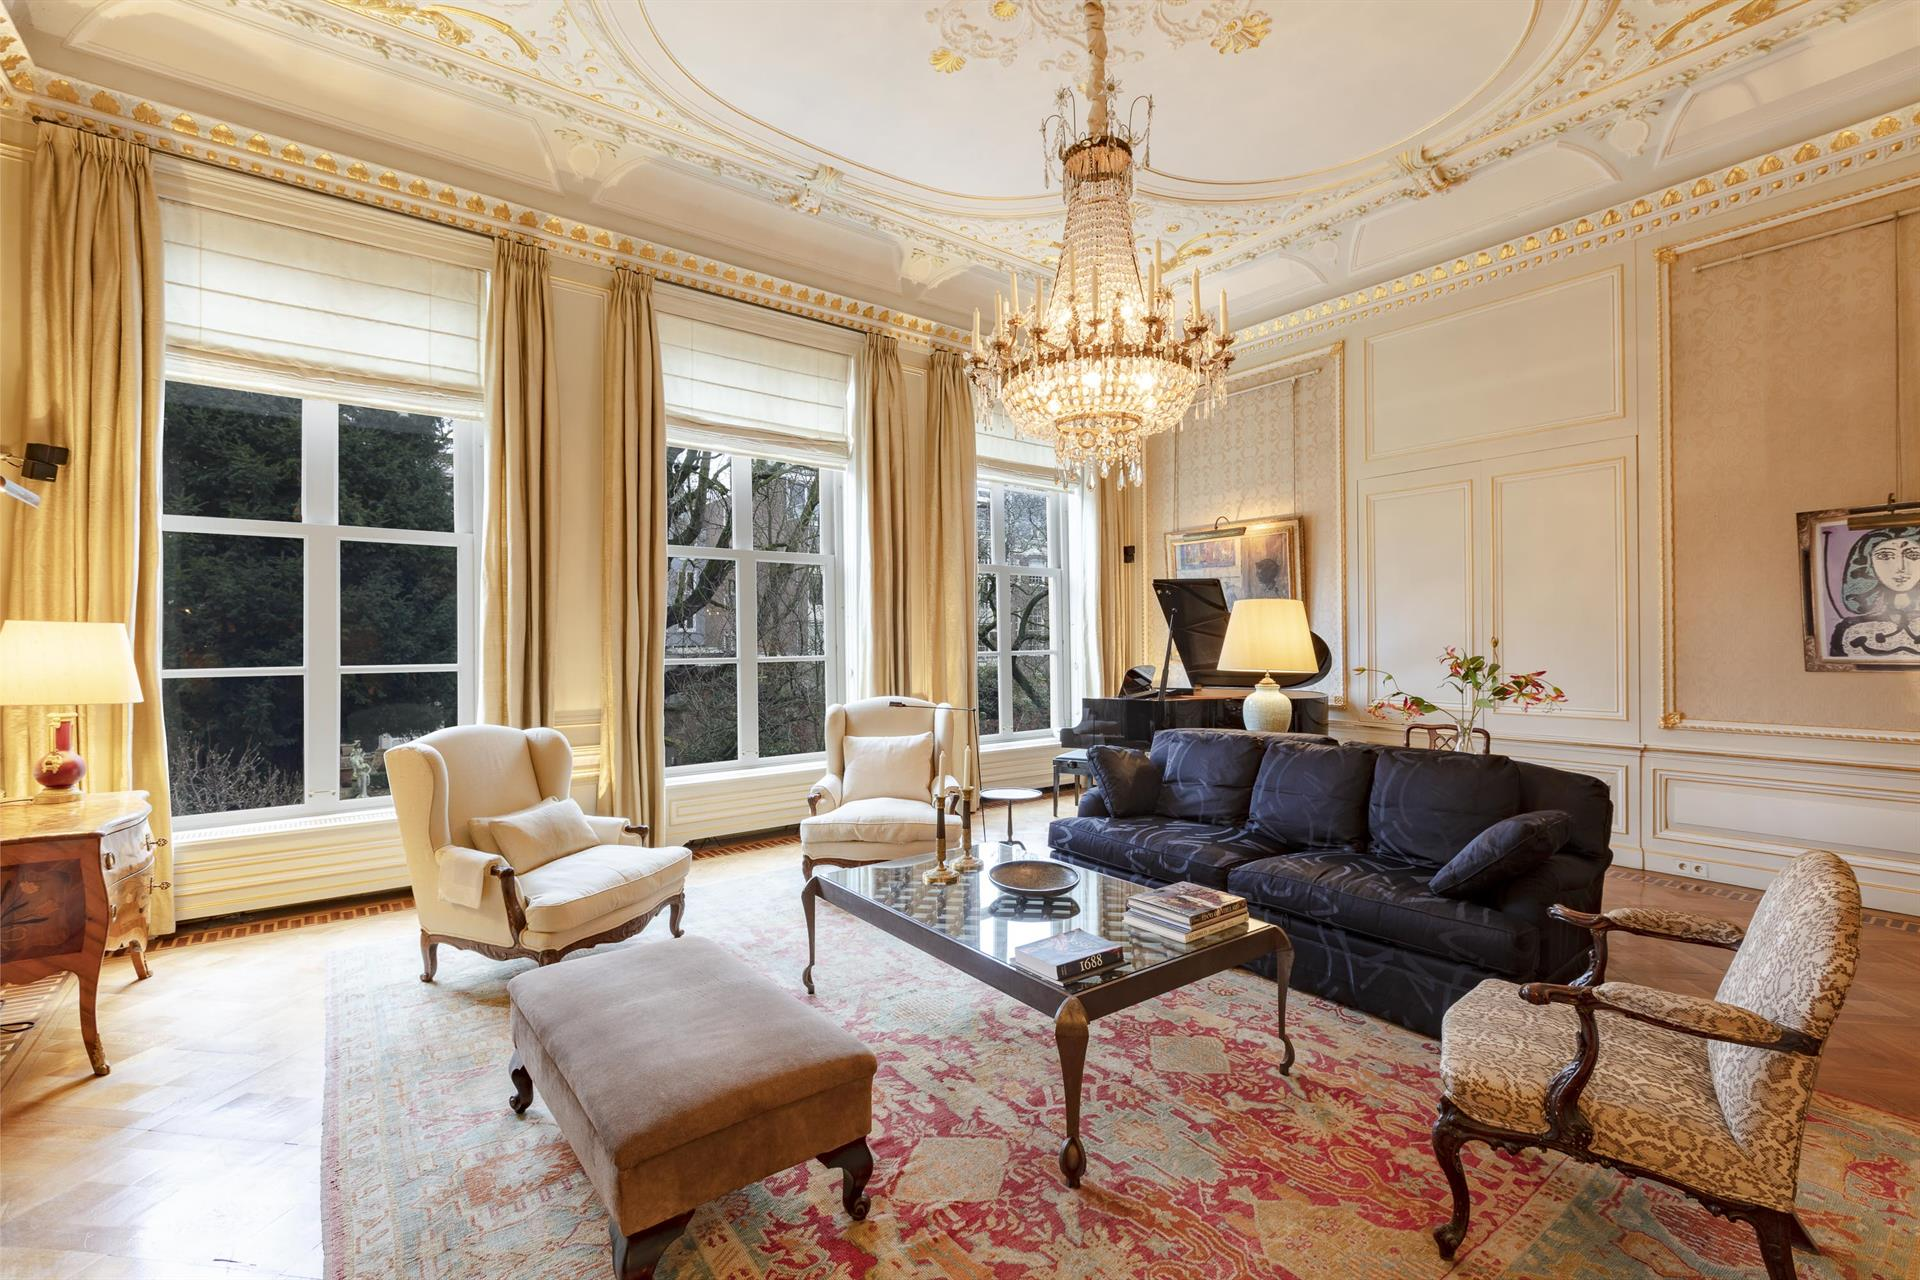 Amsterdam - Real Estate and Apartments for Sale   Christie ...